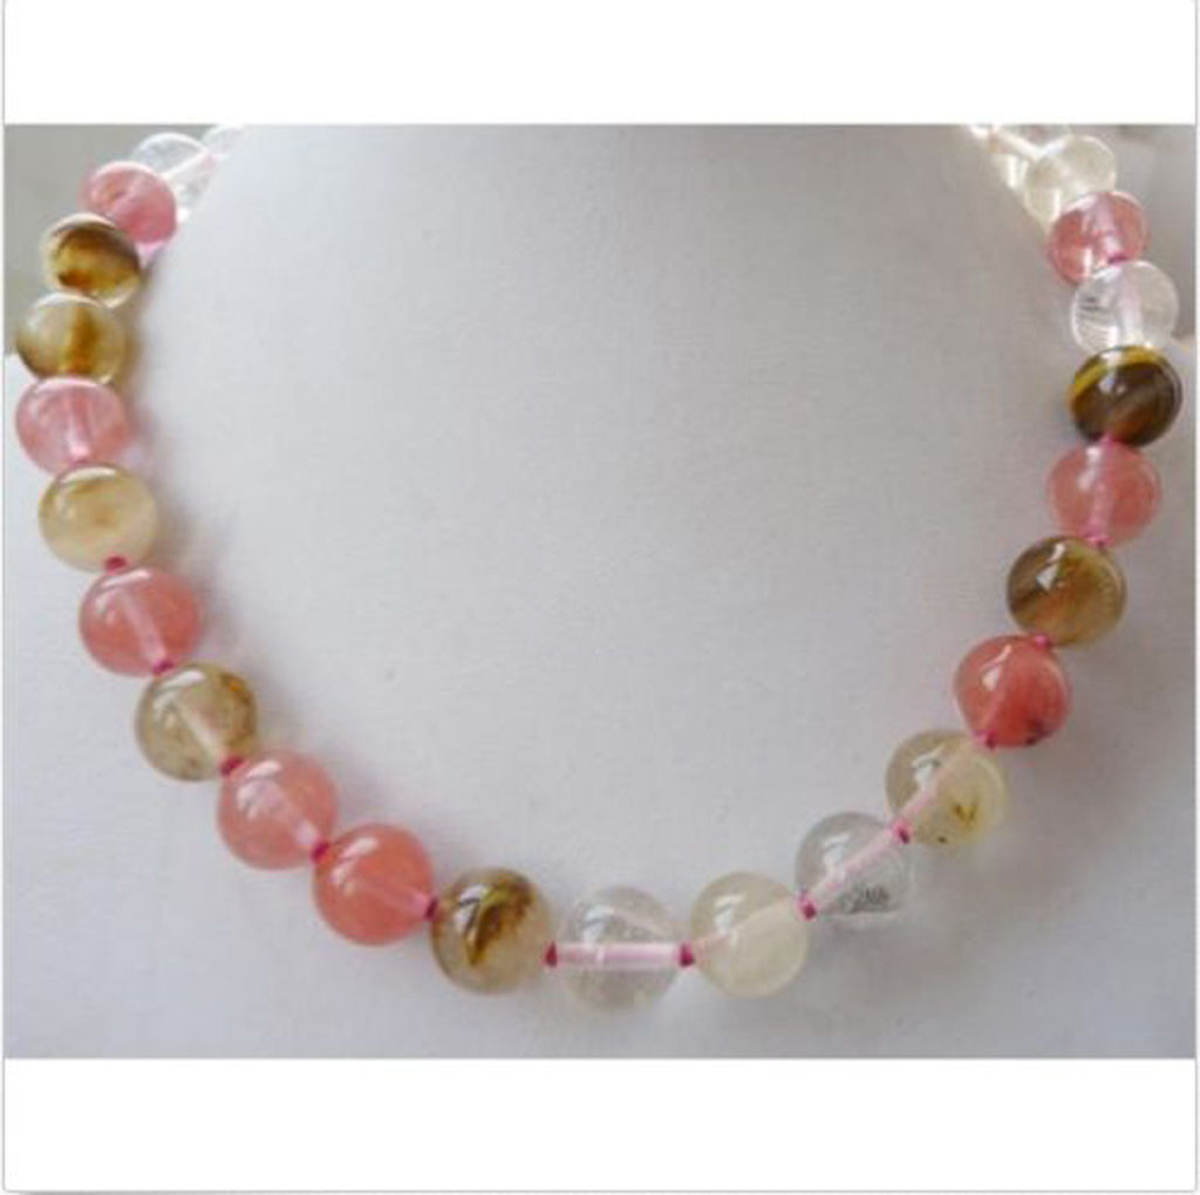 10mm Faceted Watermelon Tourmaline Gem Necklace 18inch